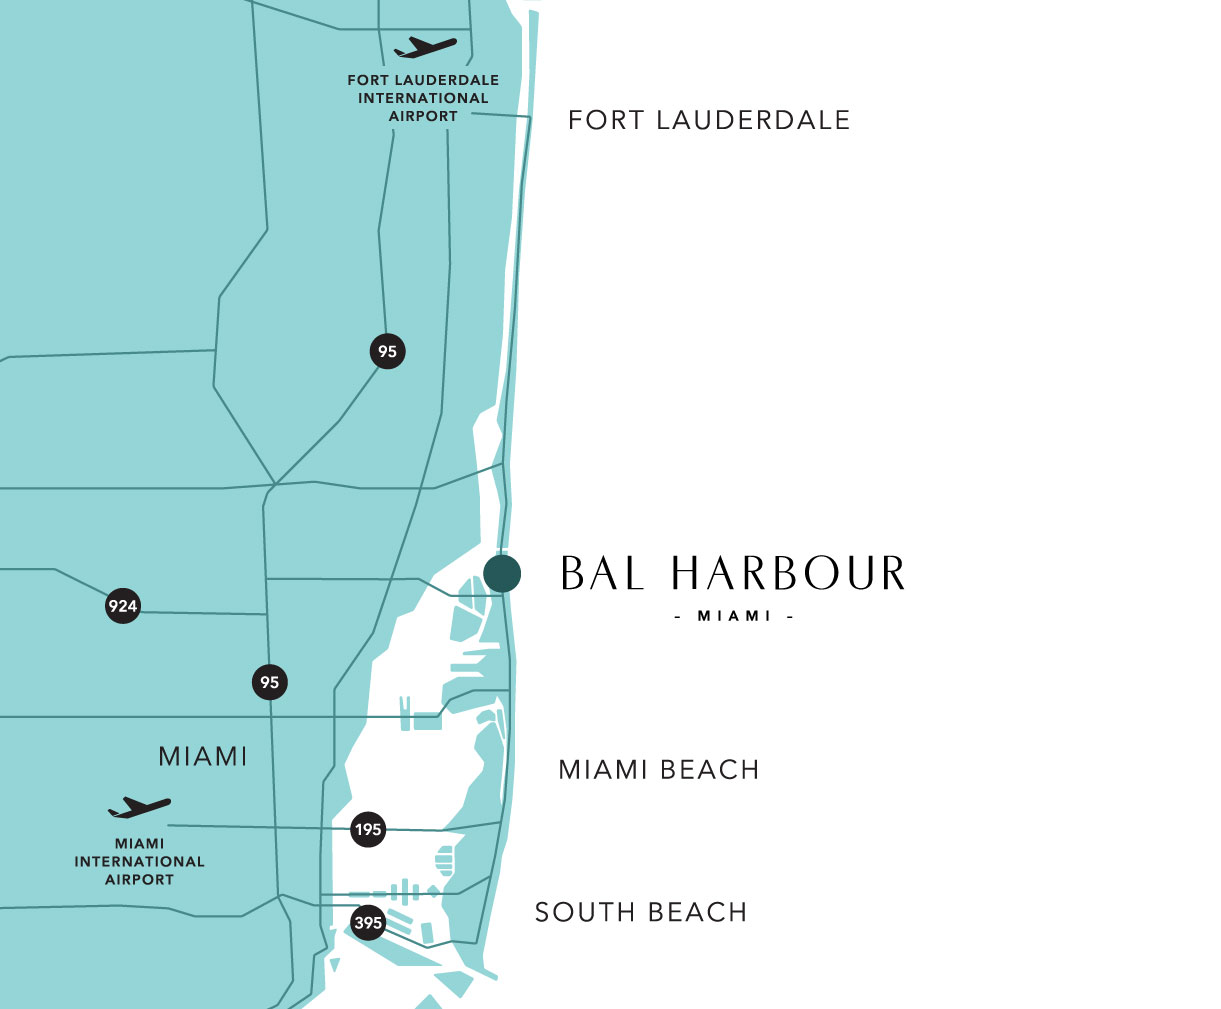 bal harbour map and guide to hotels near south beach, miami